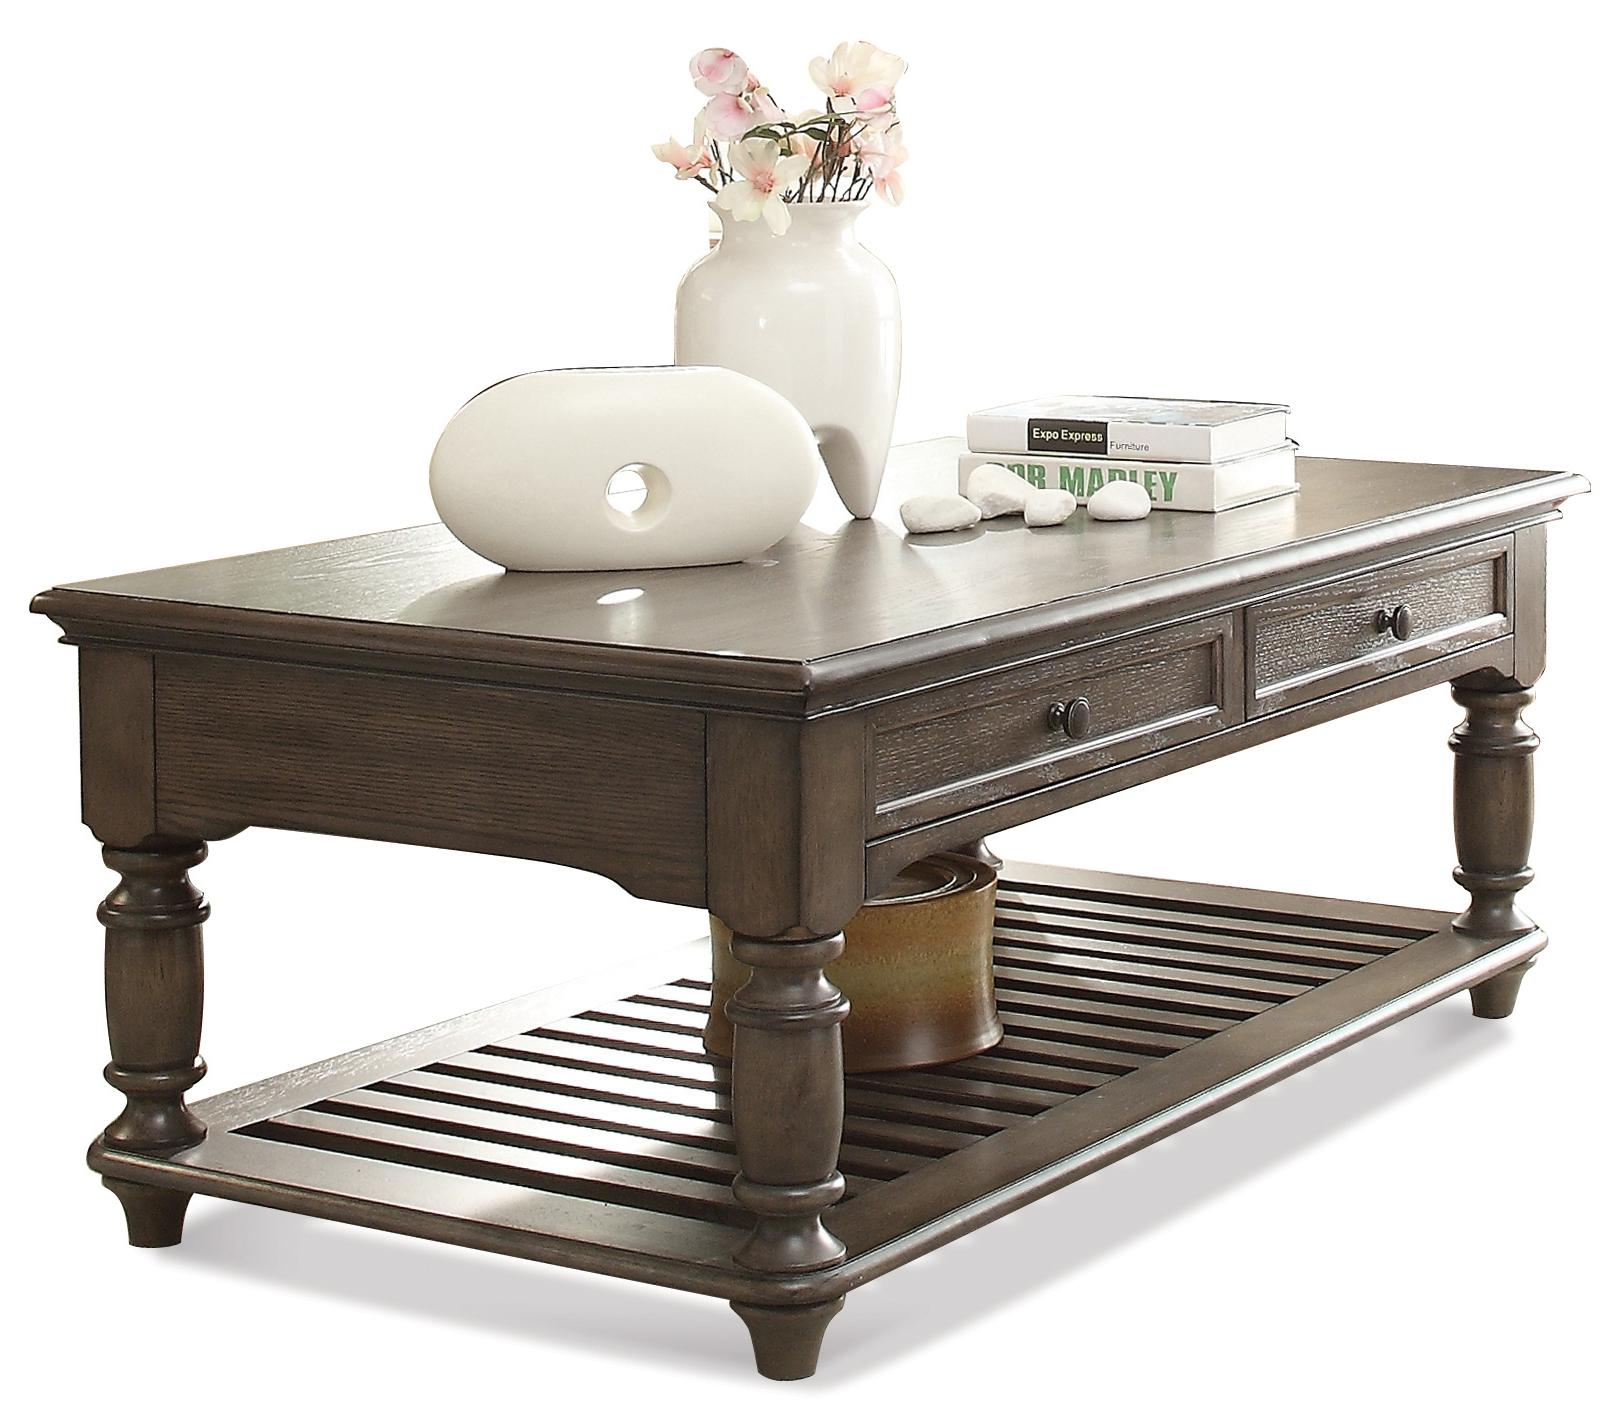 Riverside Furniture Belmeade Rectangular Coffee Table - Item Number: 15802